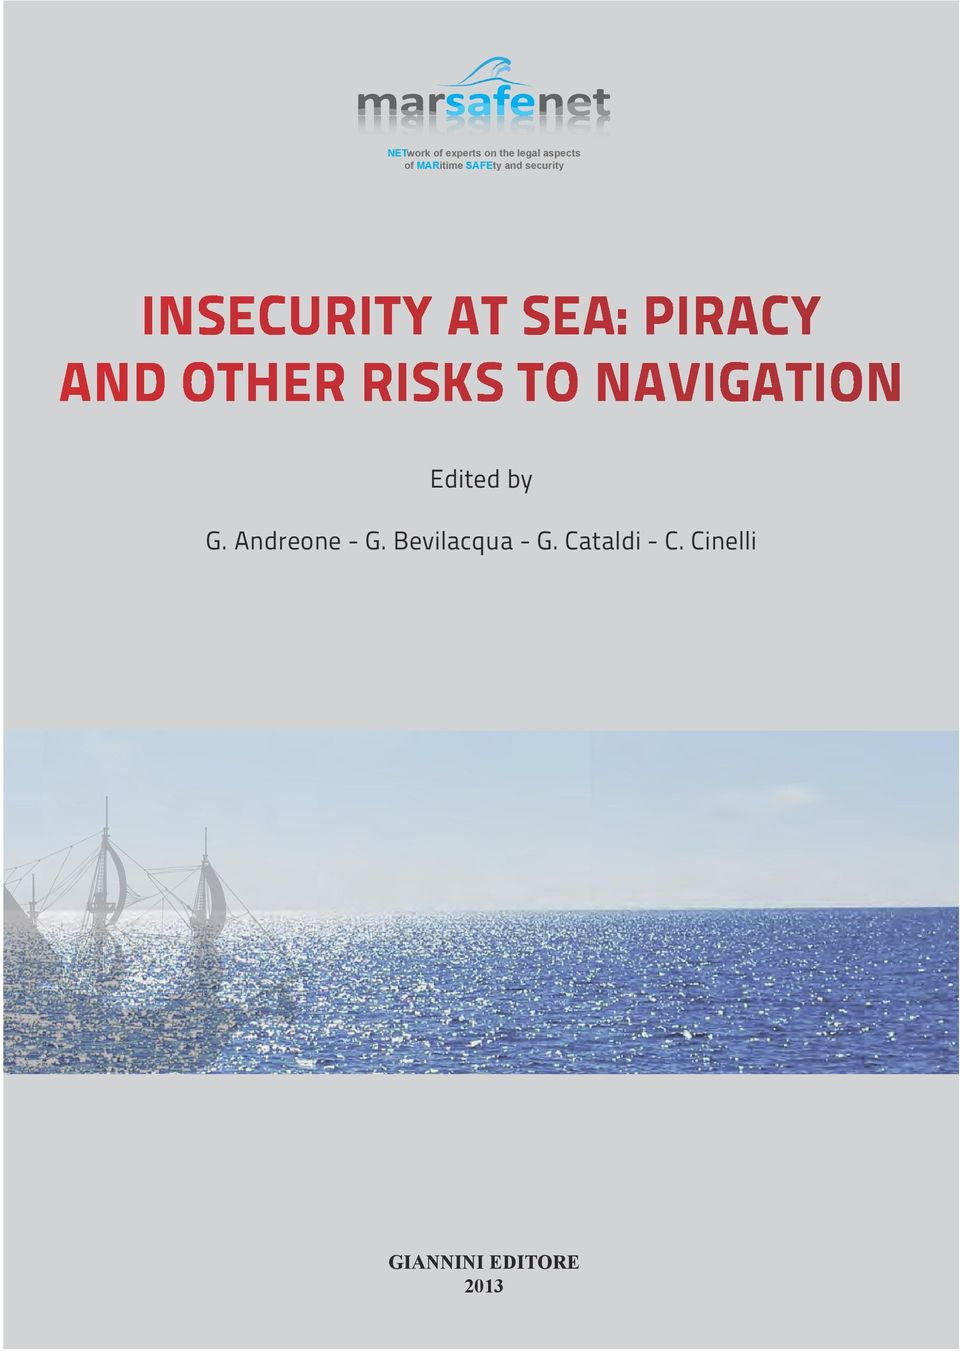 other risks to navigation Edited by G. Andreone - G.